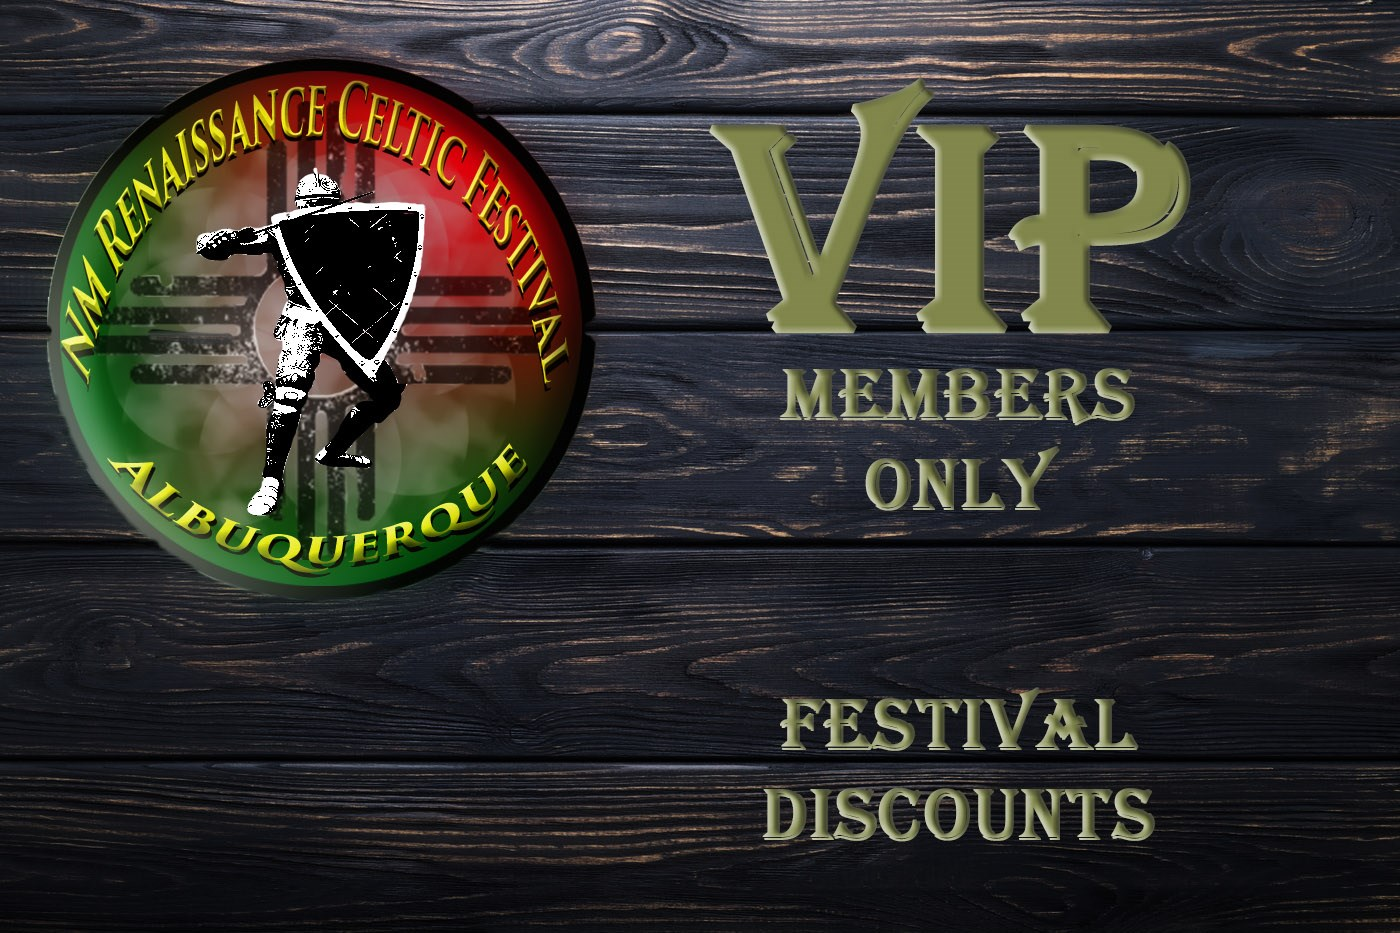 Festival VIP VIP weekend Passes for 2, with food and drink discounts on Mar 27, 10:00@Expo NM state fairgrounds - Buy tickets and Get information on NM Renaissance Celtic Festival